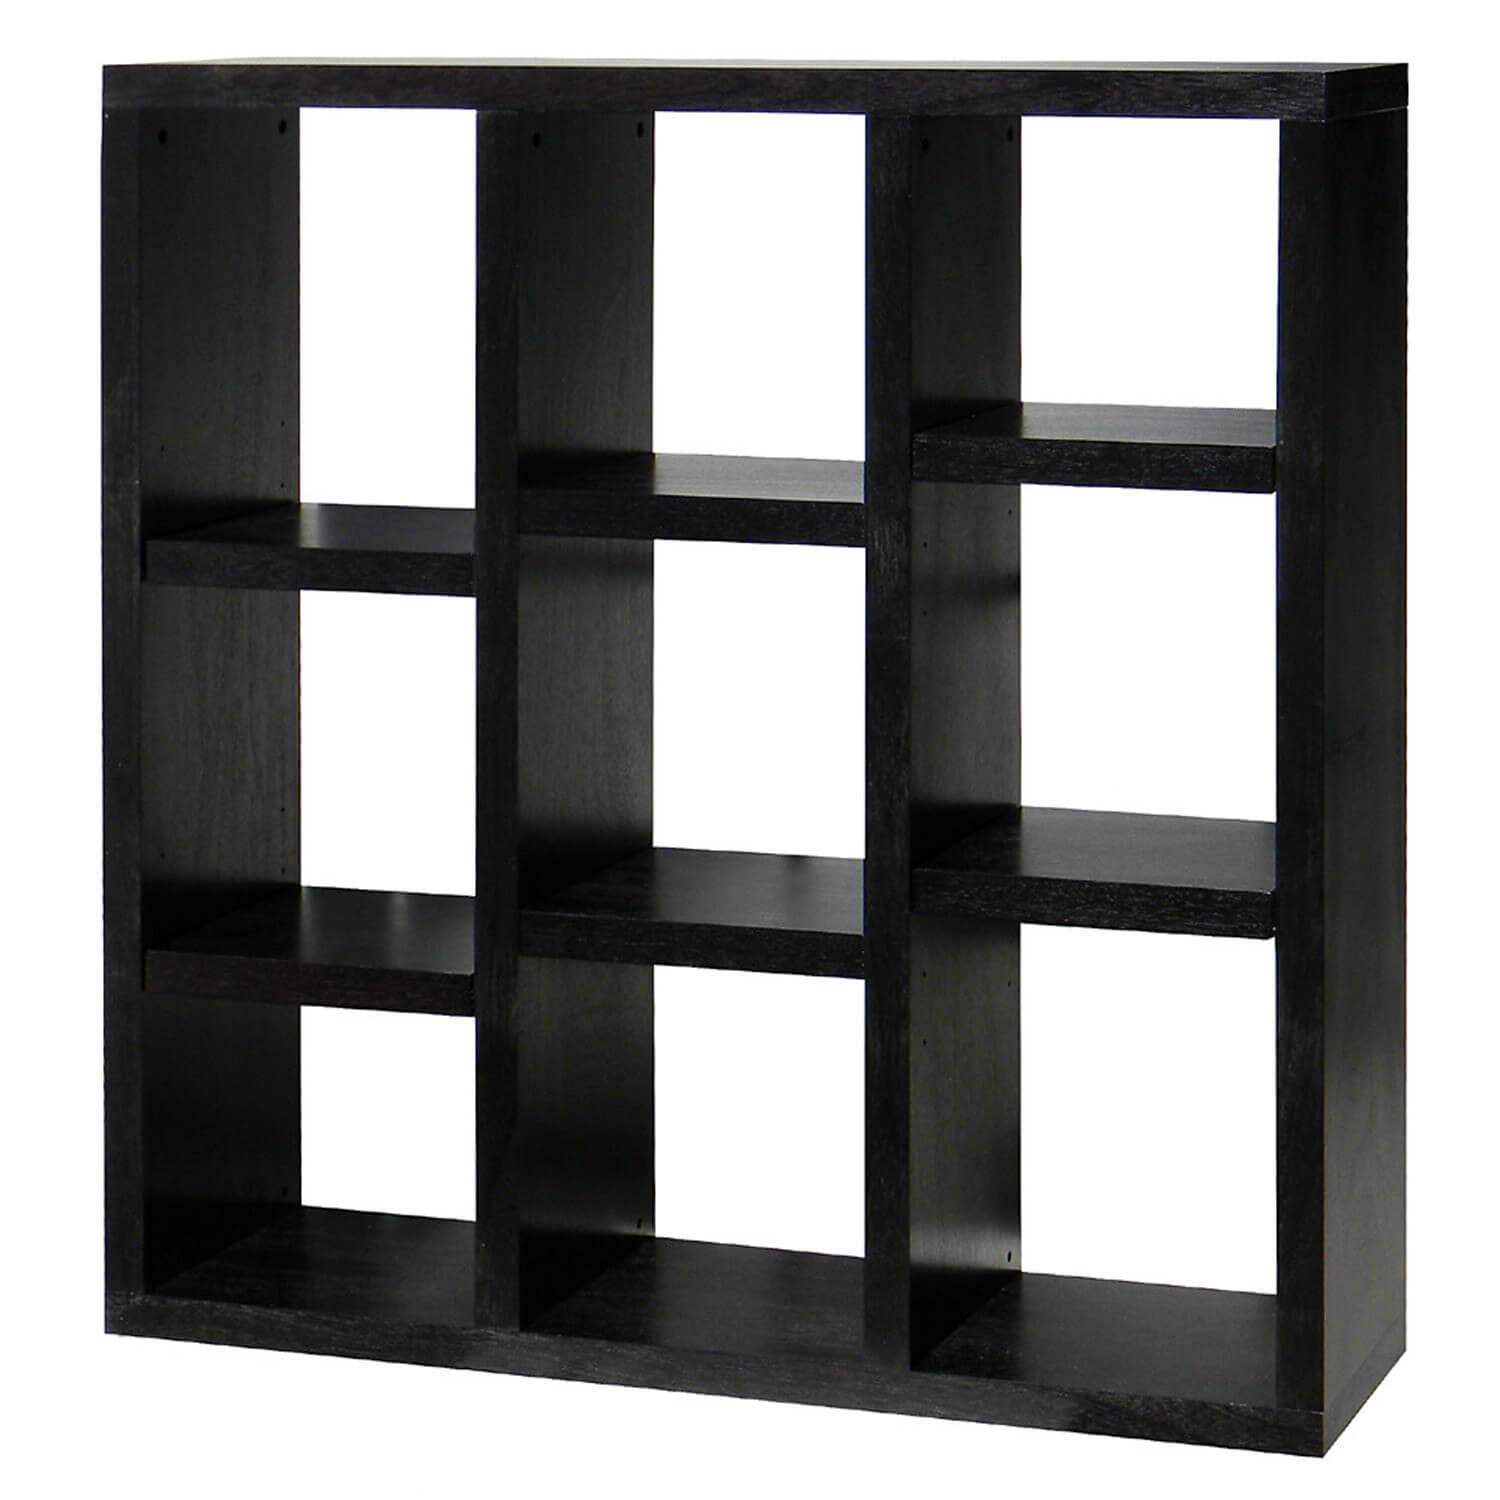 Here's an interesting 9-cube shelf with a staircase style pattern achieved with the shelves themselves.